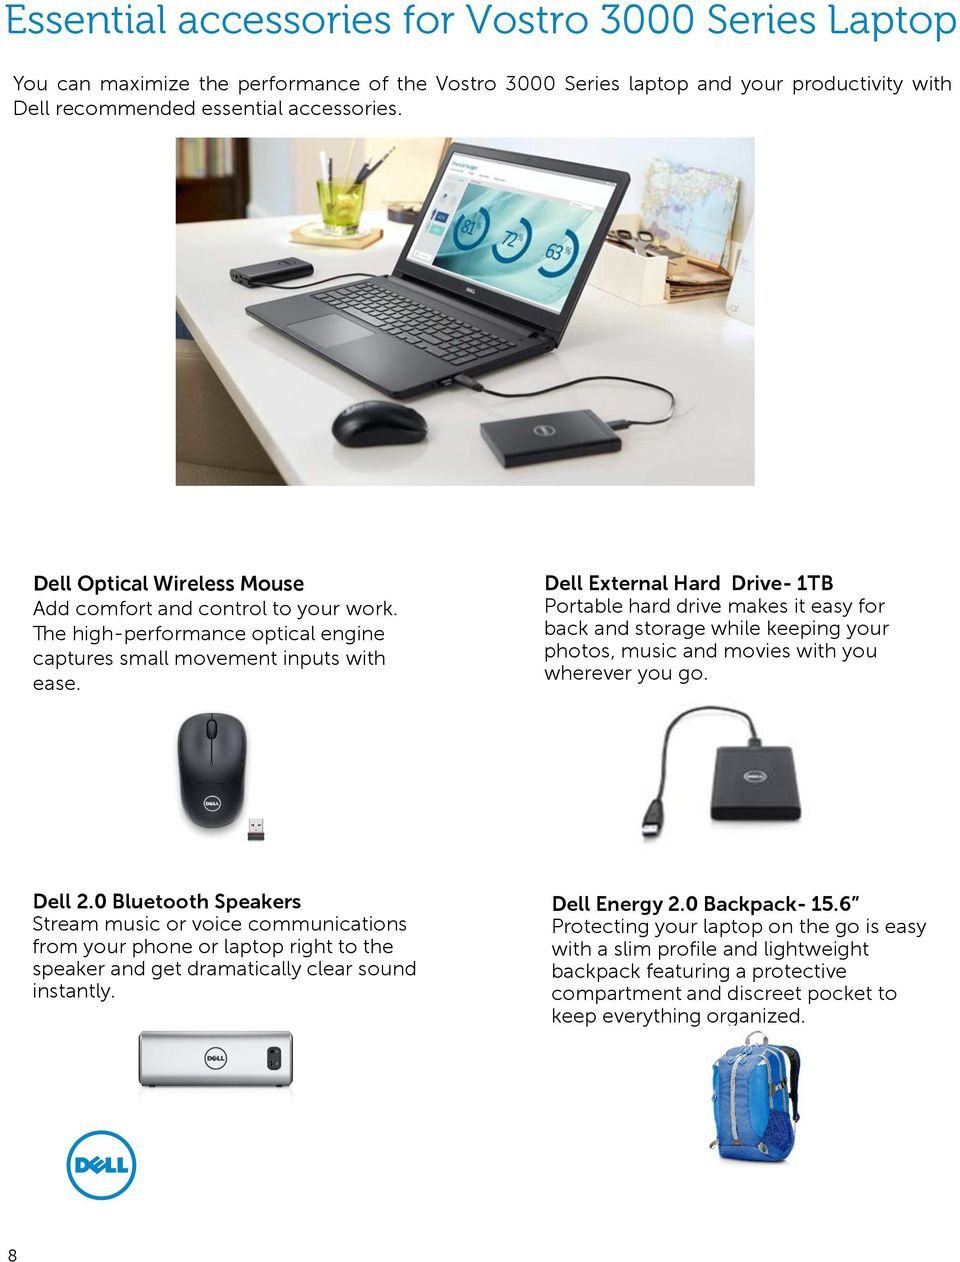 Dell External Hard Drive- 1TB Portable hard drive makes it easy for back and storage while keeping your photos, music and movies with you wherever you go. Dell 2.